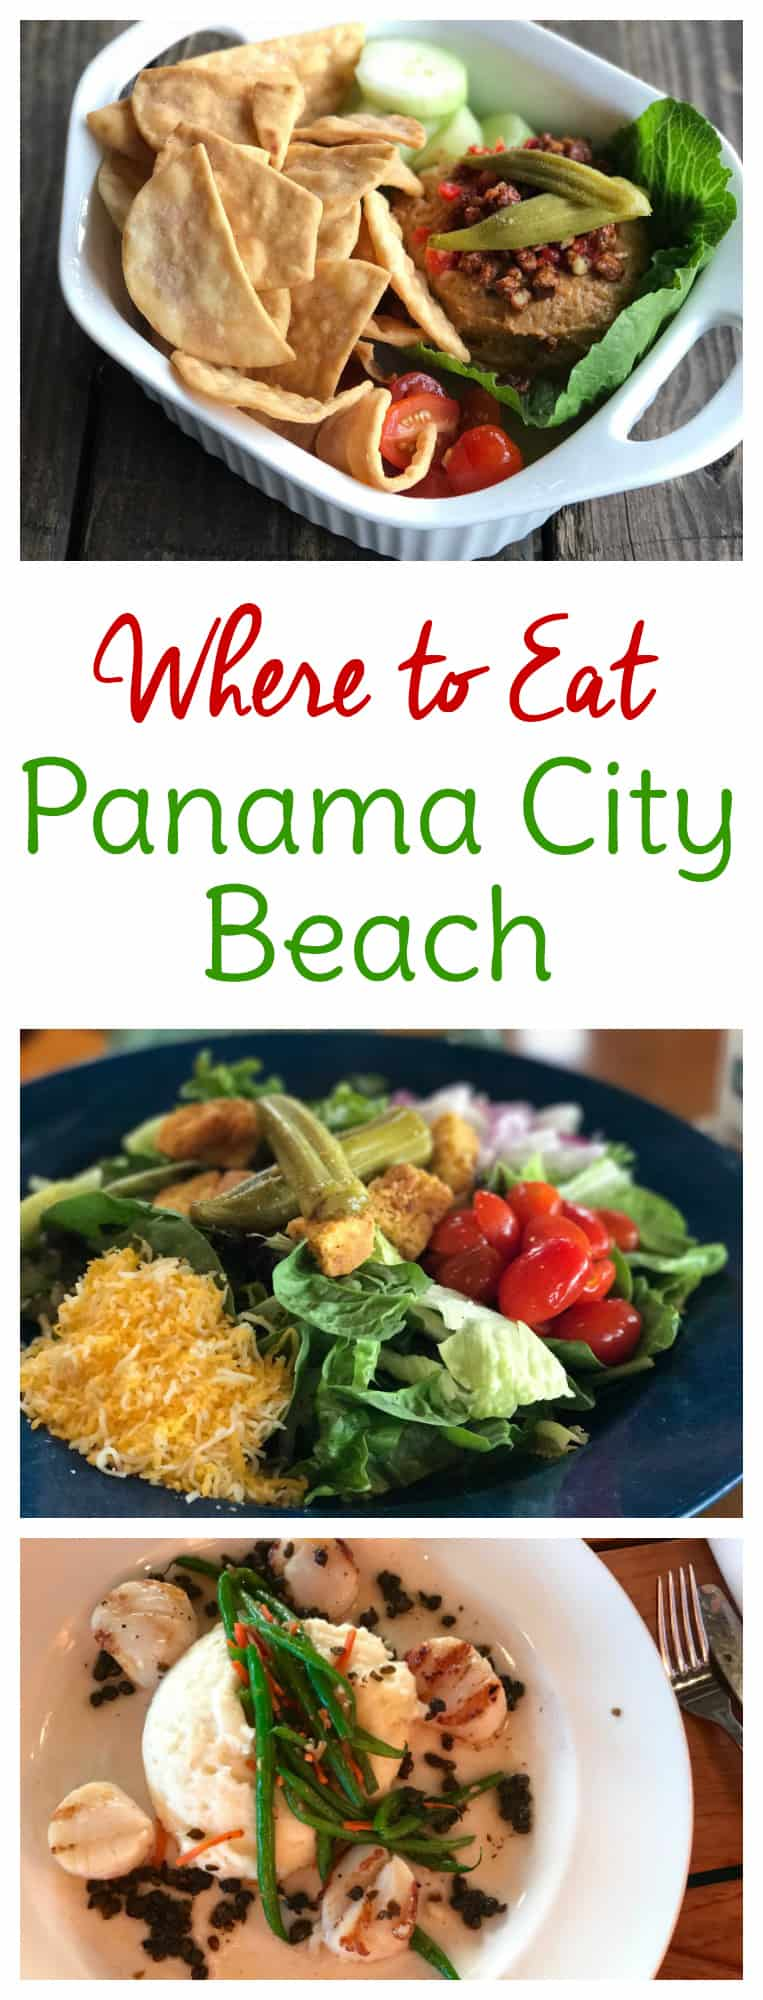 Places To Eat Breakfast In Panama City Beach